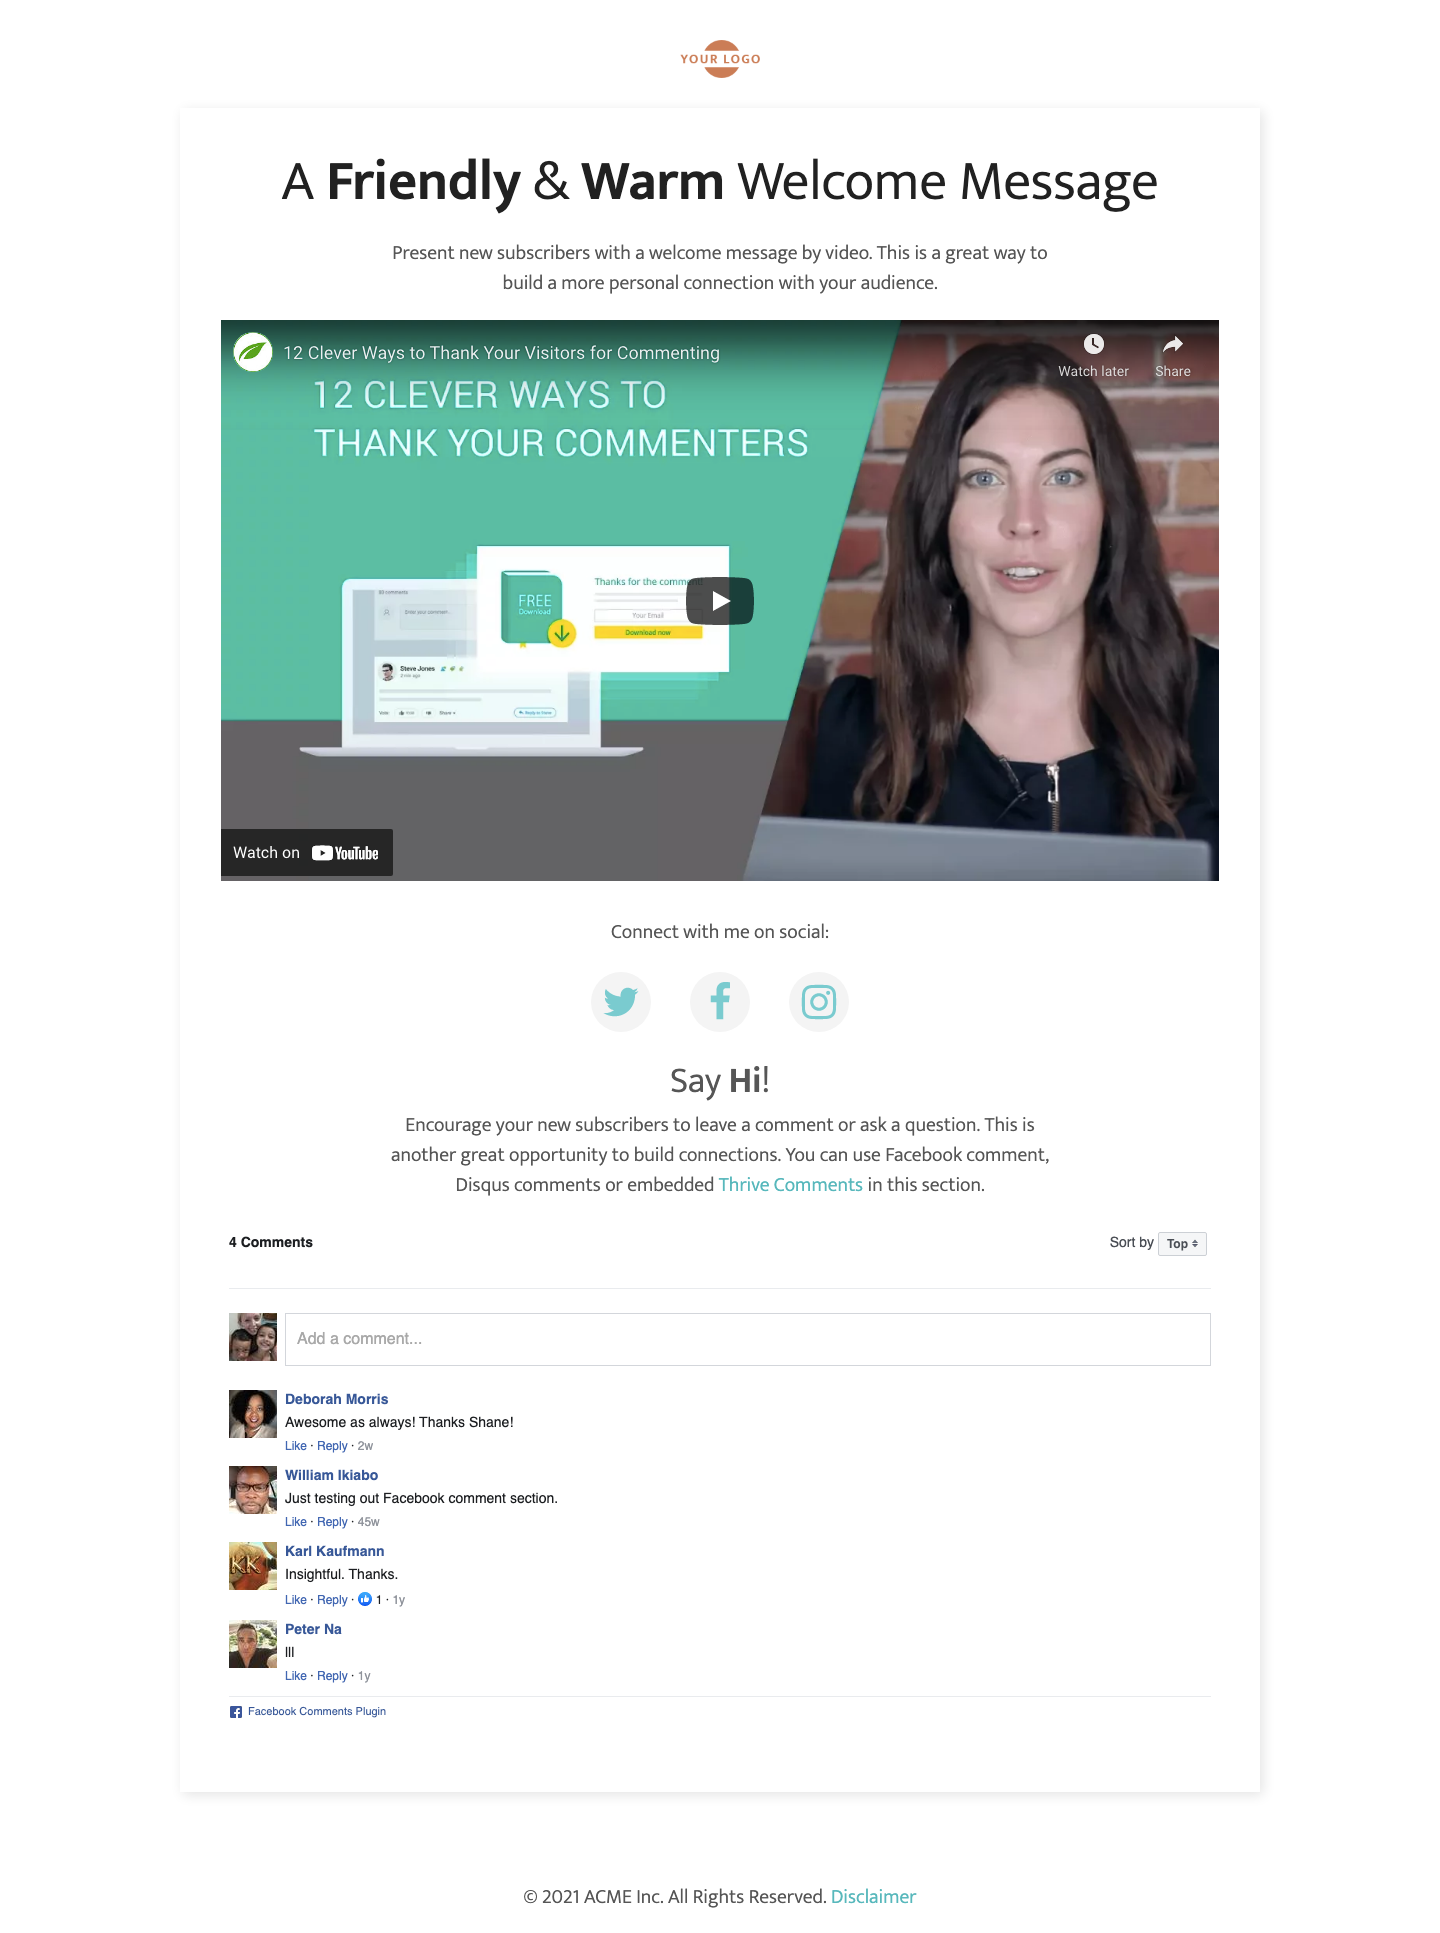 Landing page built with Thrive Architect